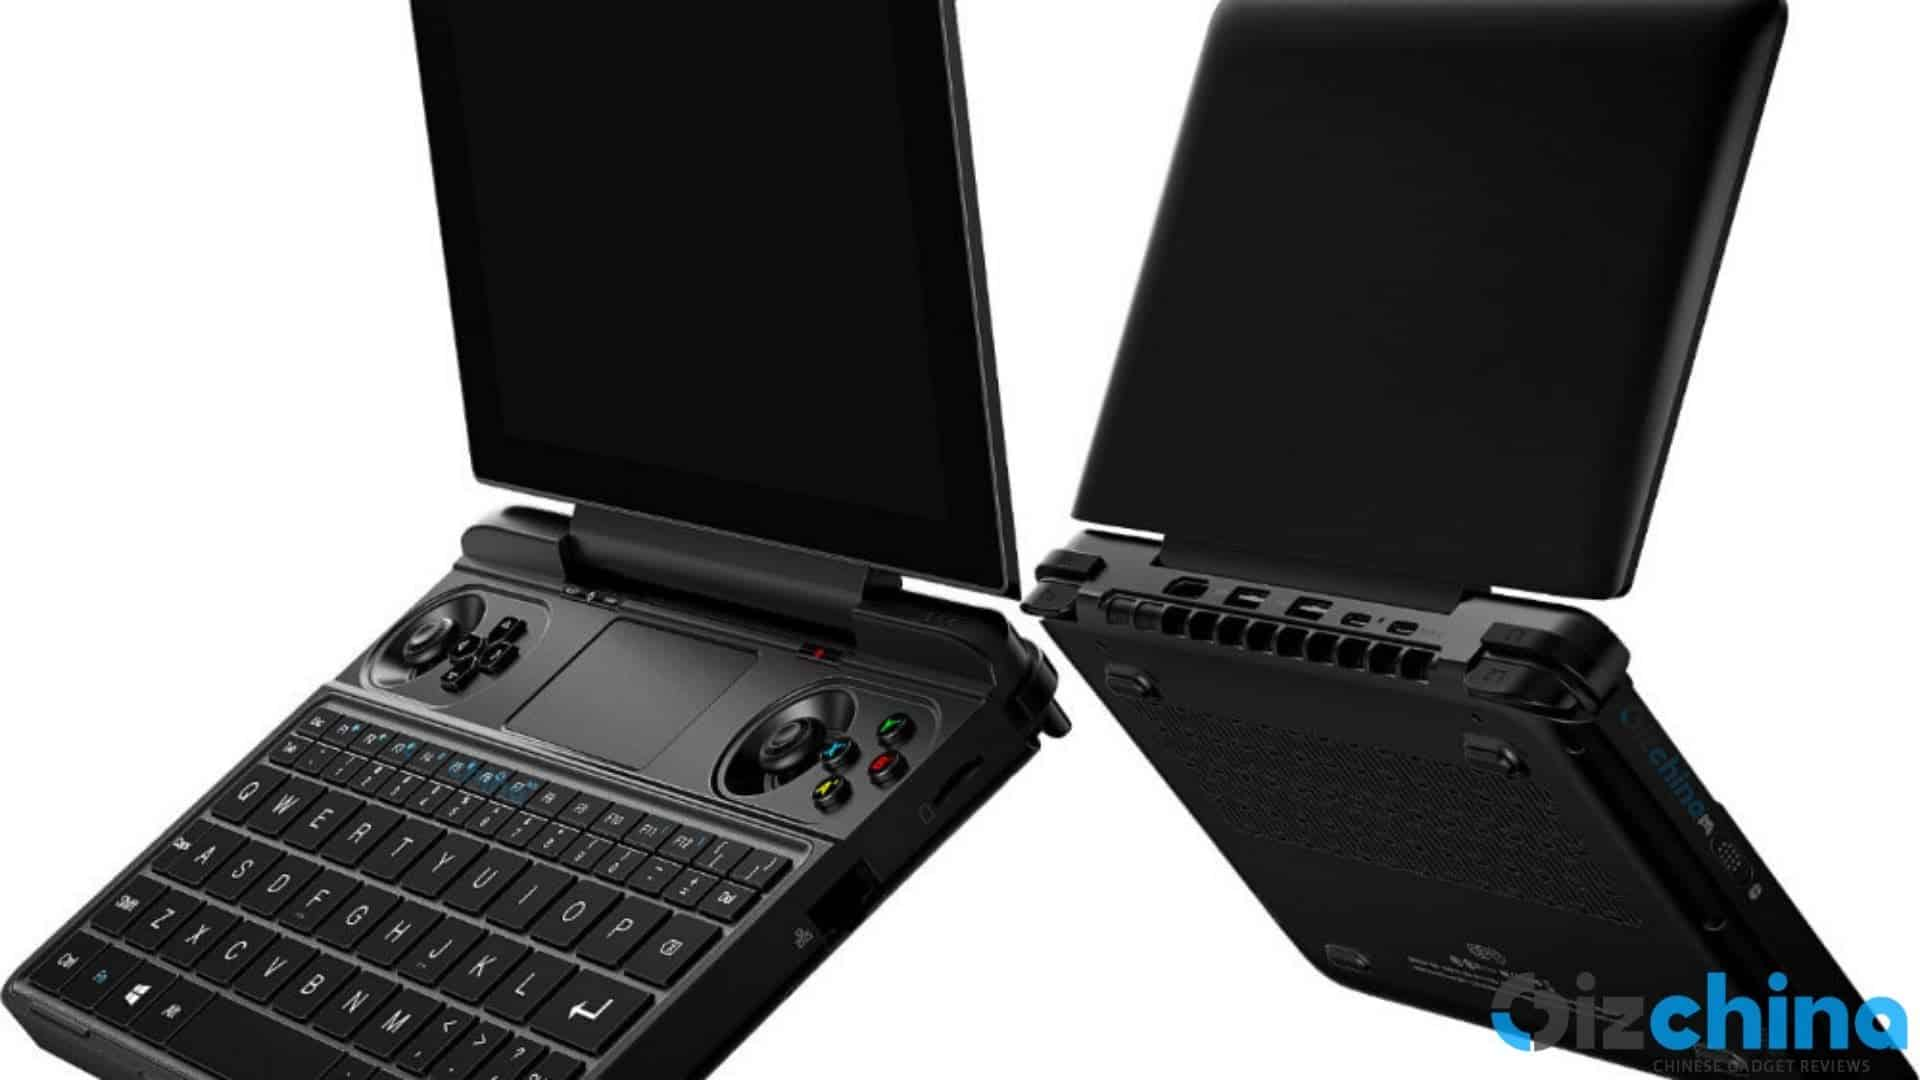 """GPD WIN Max is the Smallest """"Handheld Gaming Laptop"""" with Intel Core i5-1035G7 CPU"""